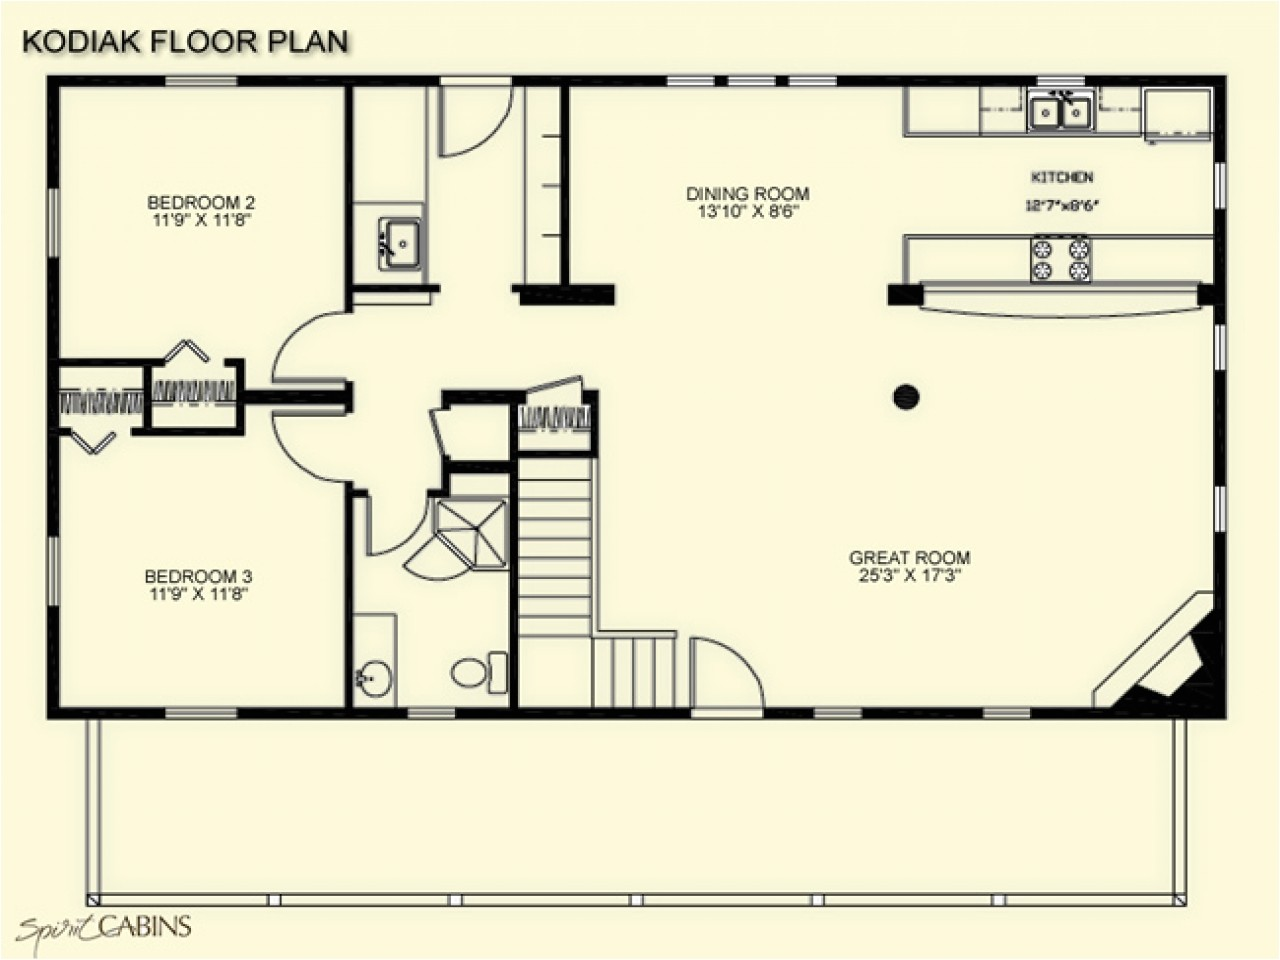 cabins lofts house plans